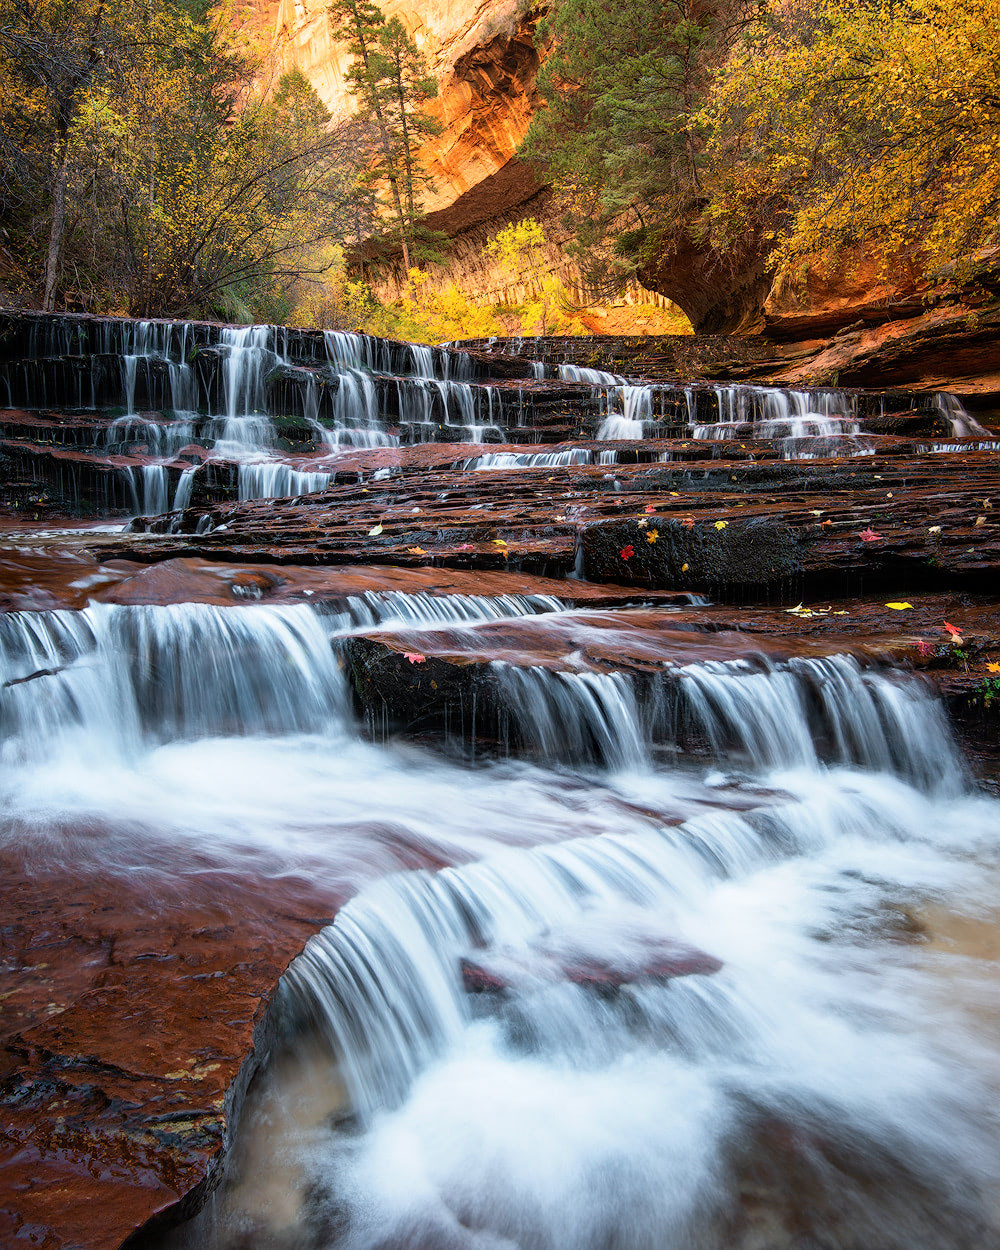 The Ultimate Guide to Exploring Zion National Park - Subway Hike